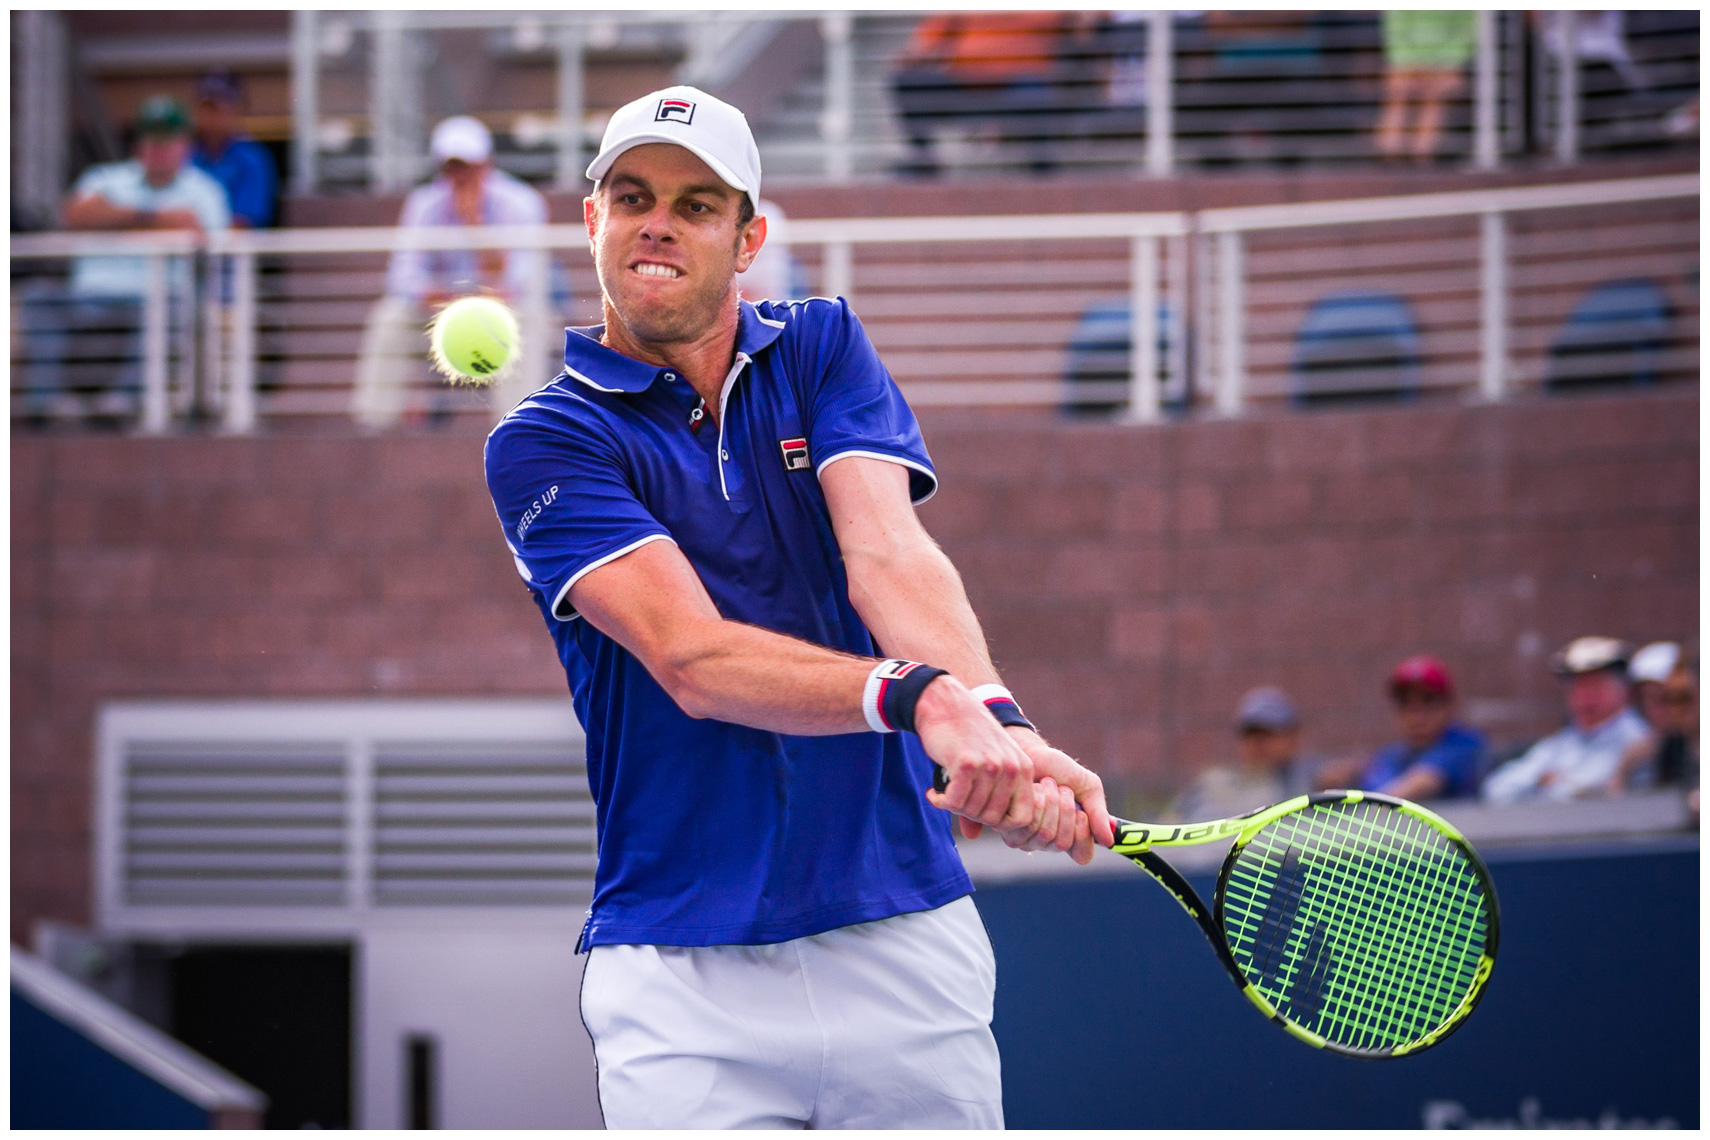 sam-querrey-tennis-us-open